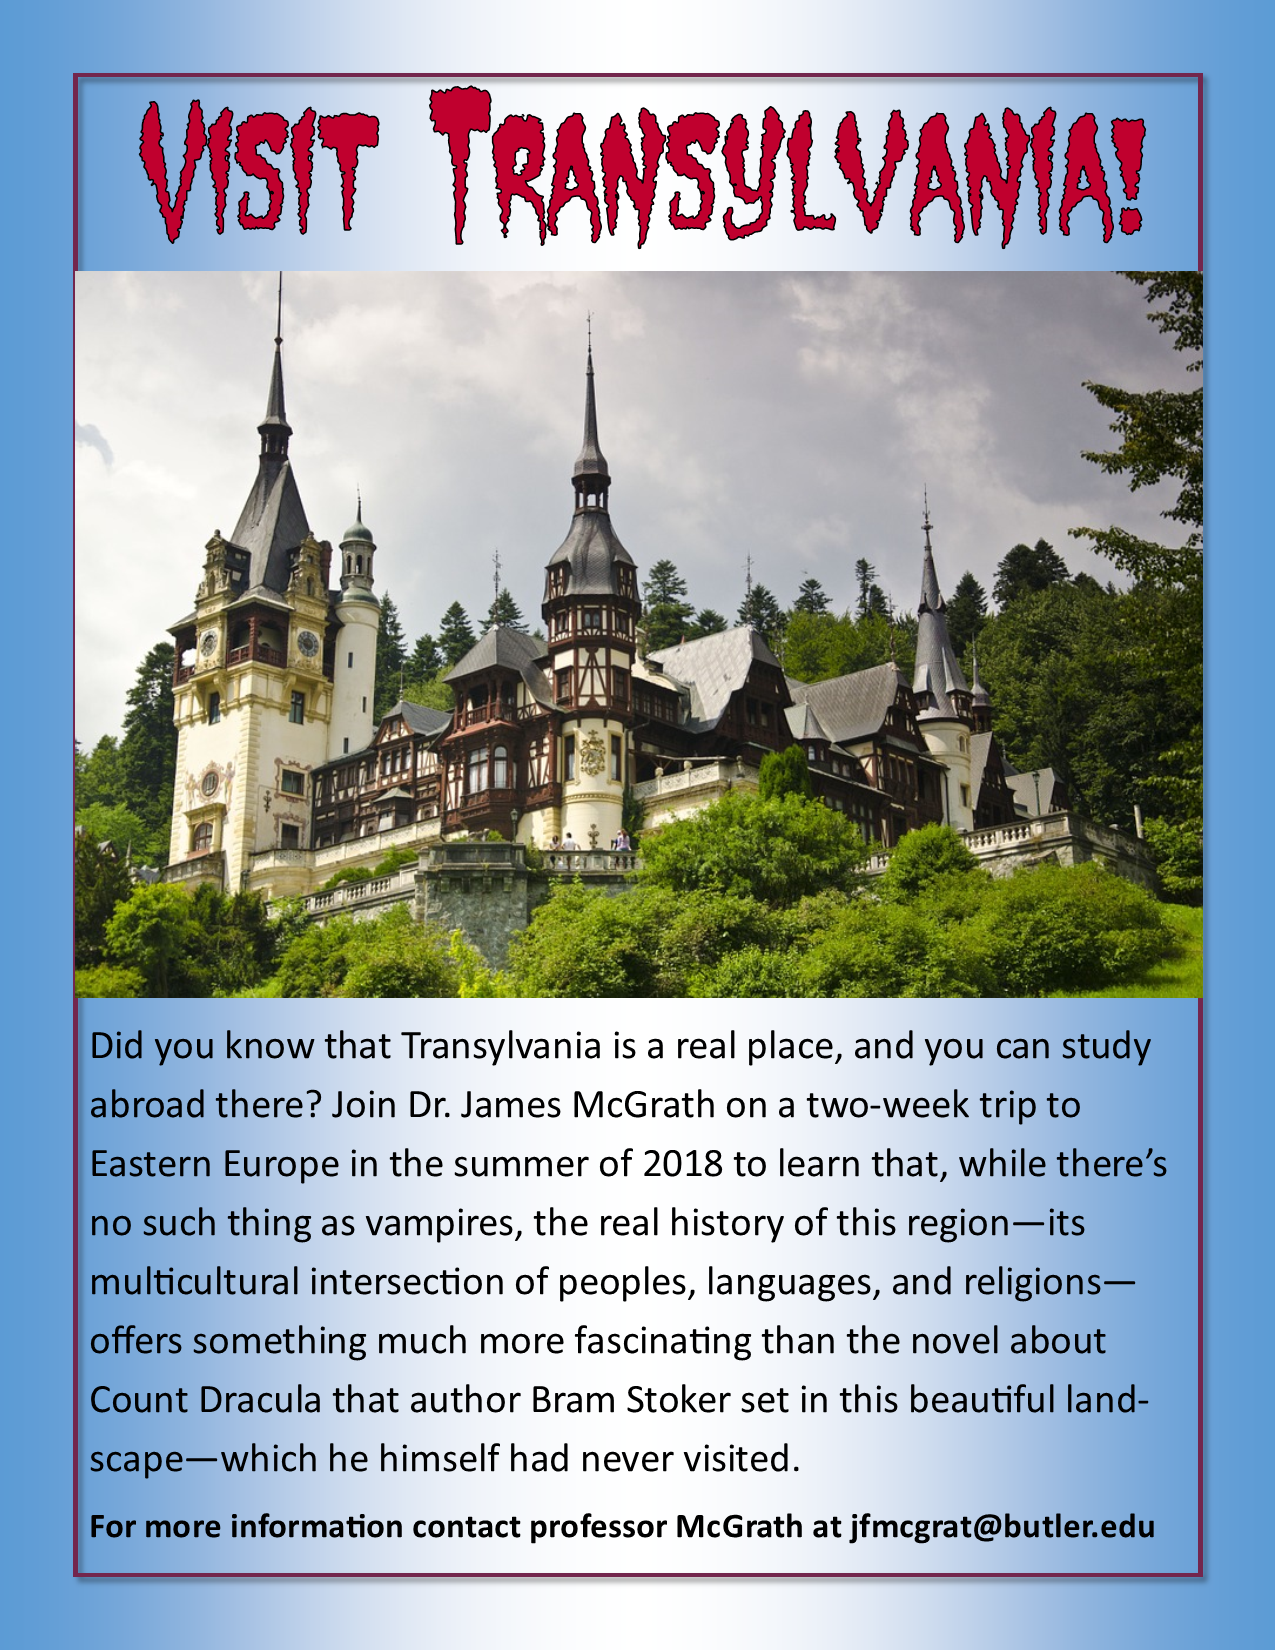 Transylvania poster 2 revised again